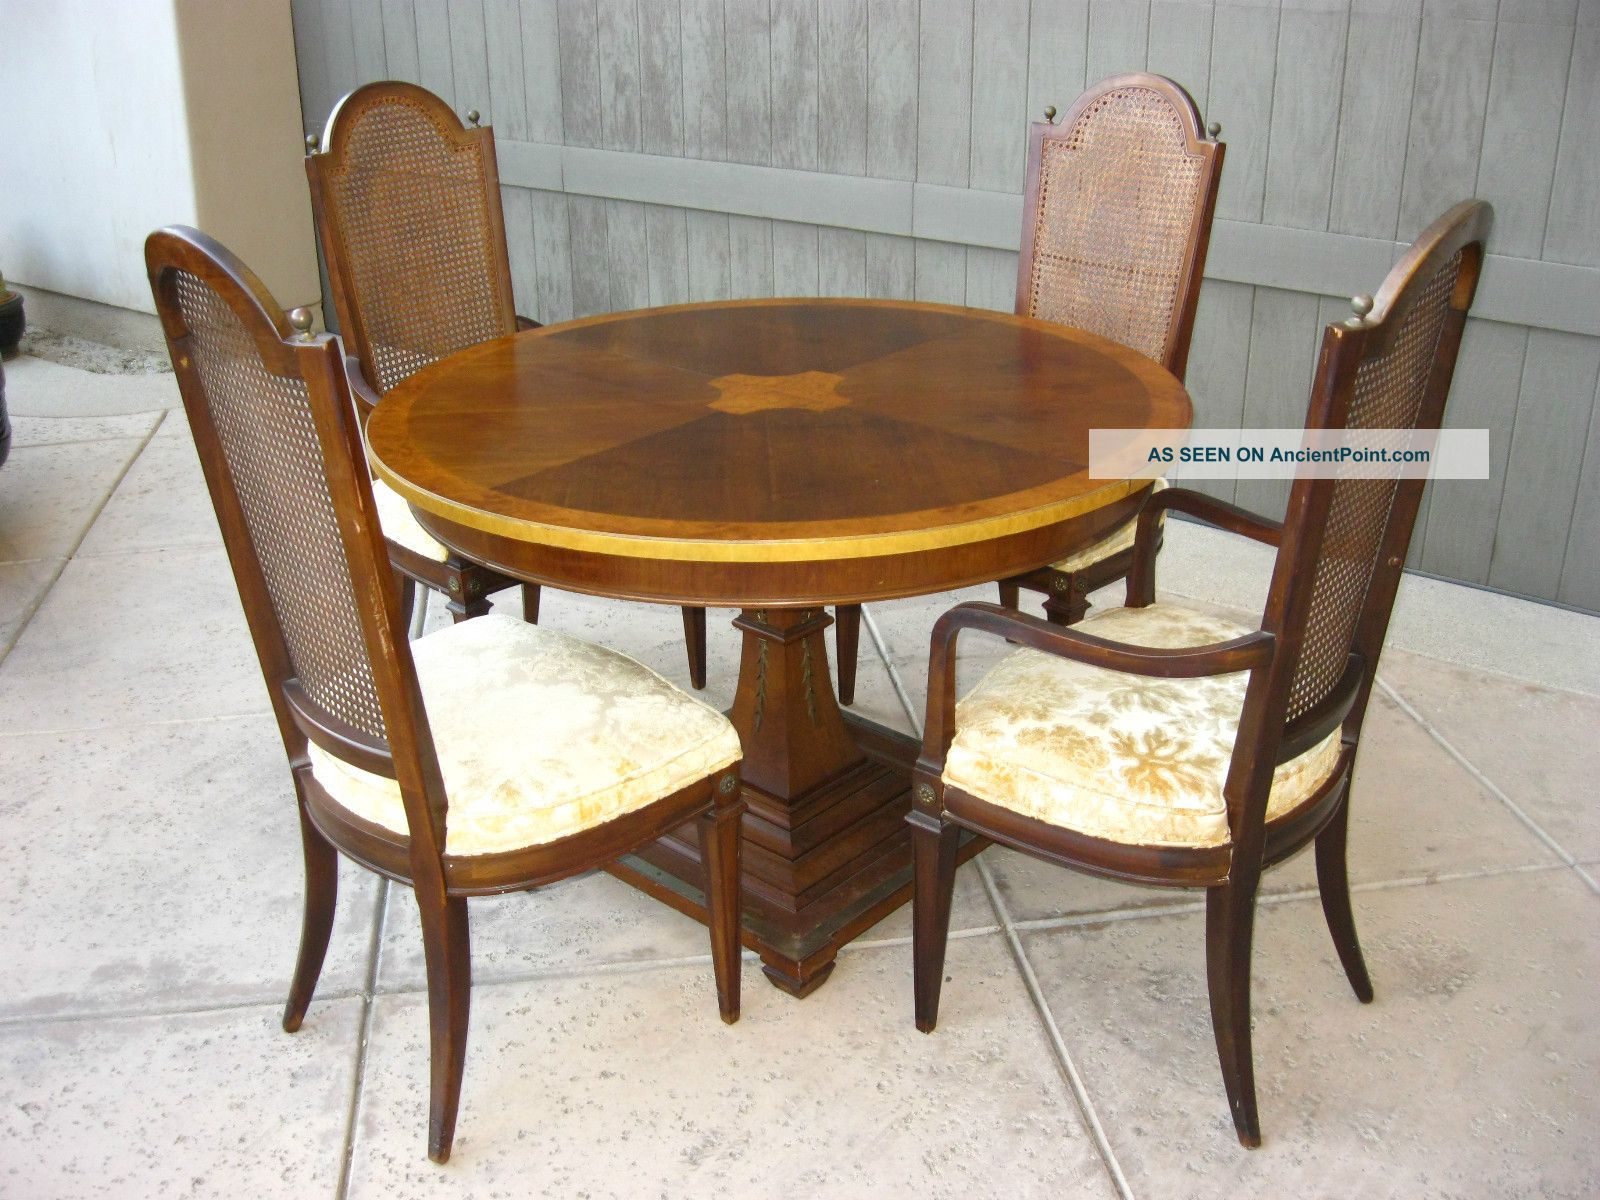 Vintage Mid Century Modern French Provincial Style Dining